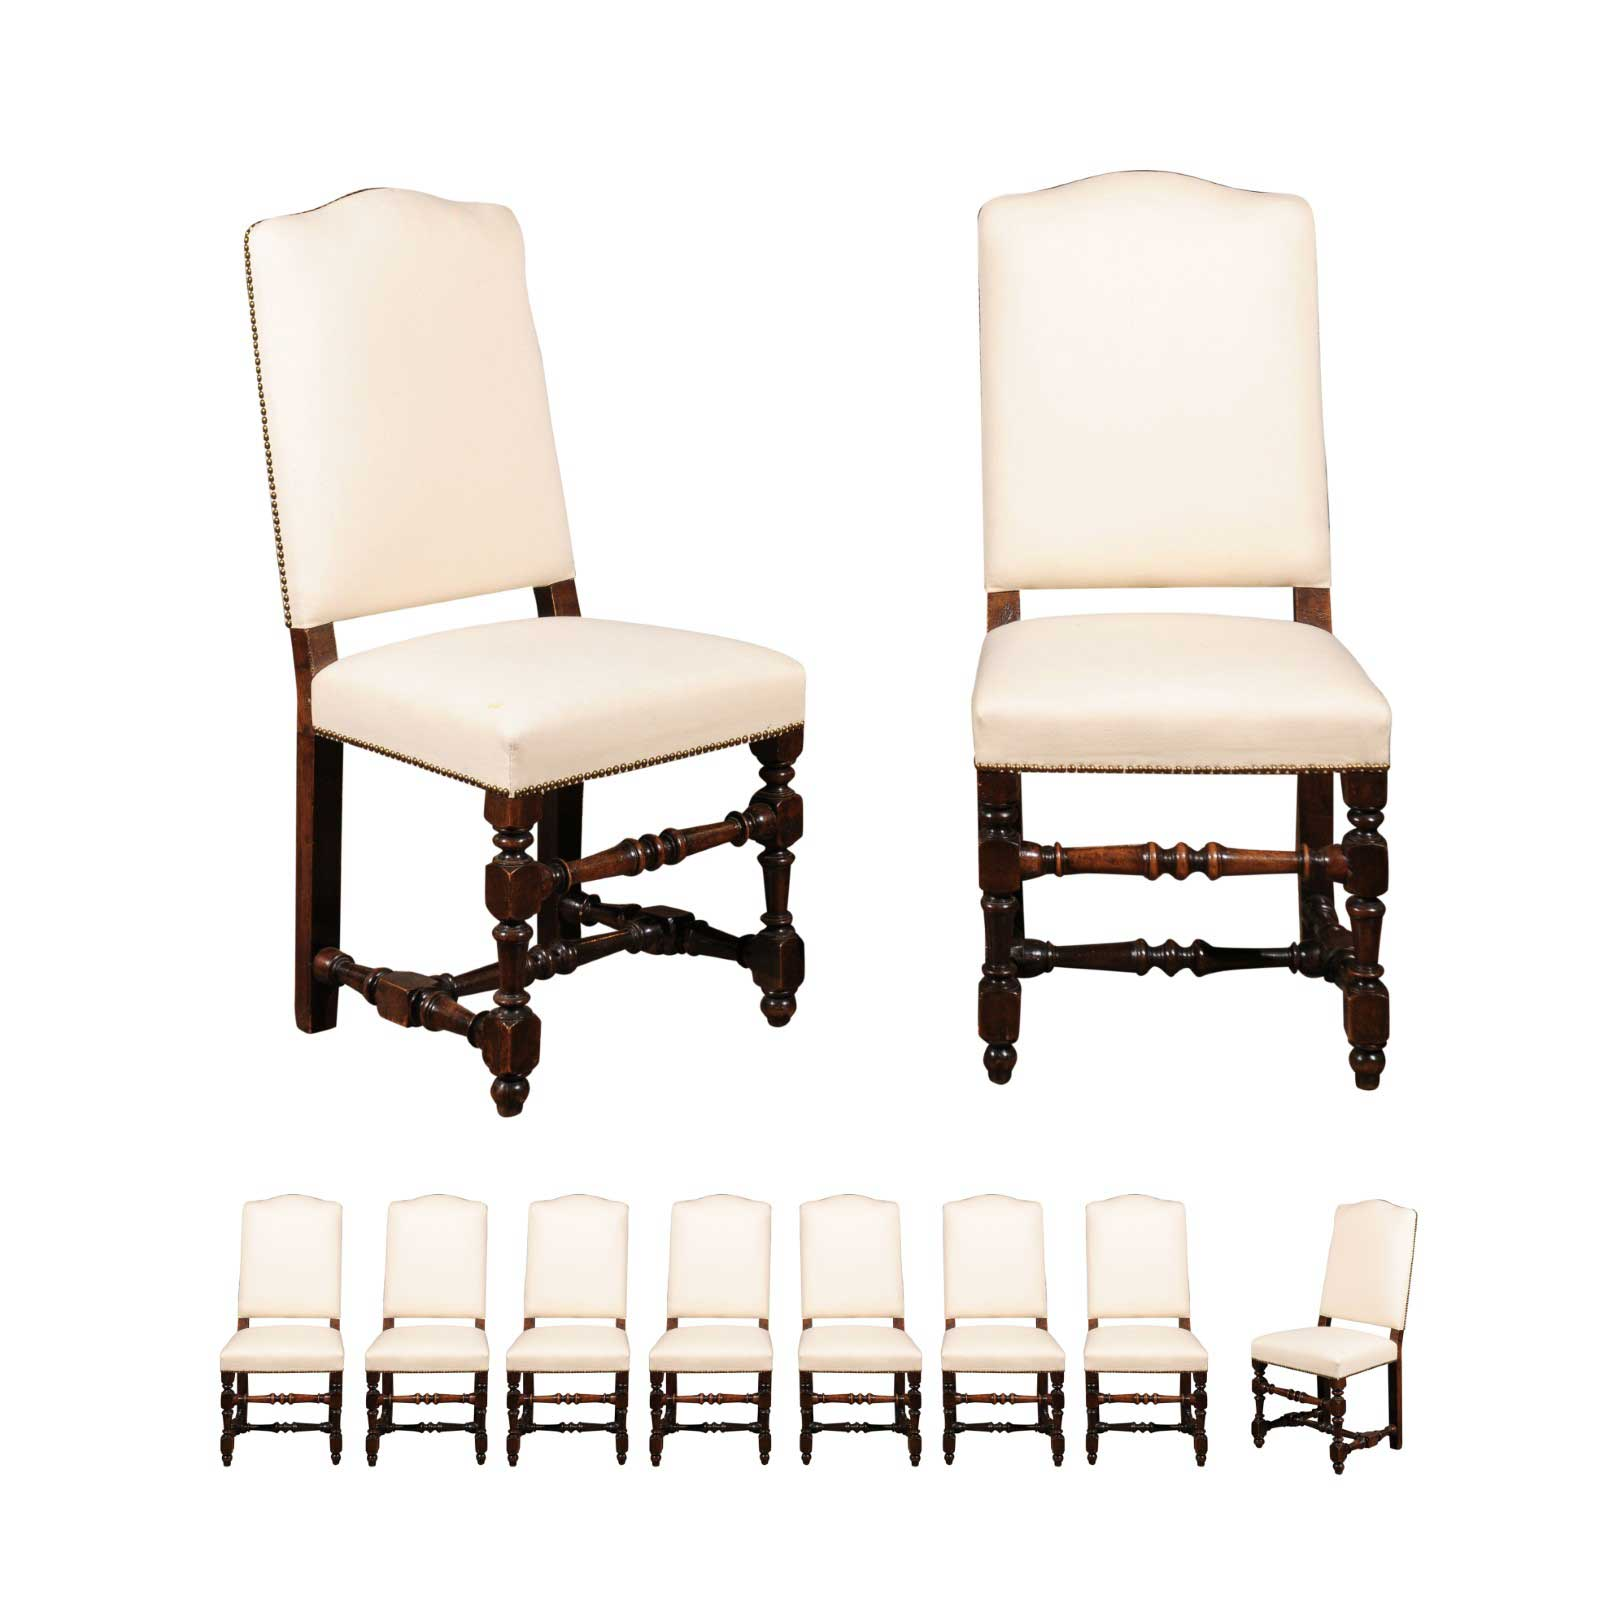 Italian Dining Chairs Italian Dining Chairs With Turned Legs And Stretchers